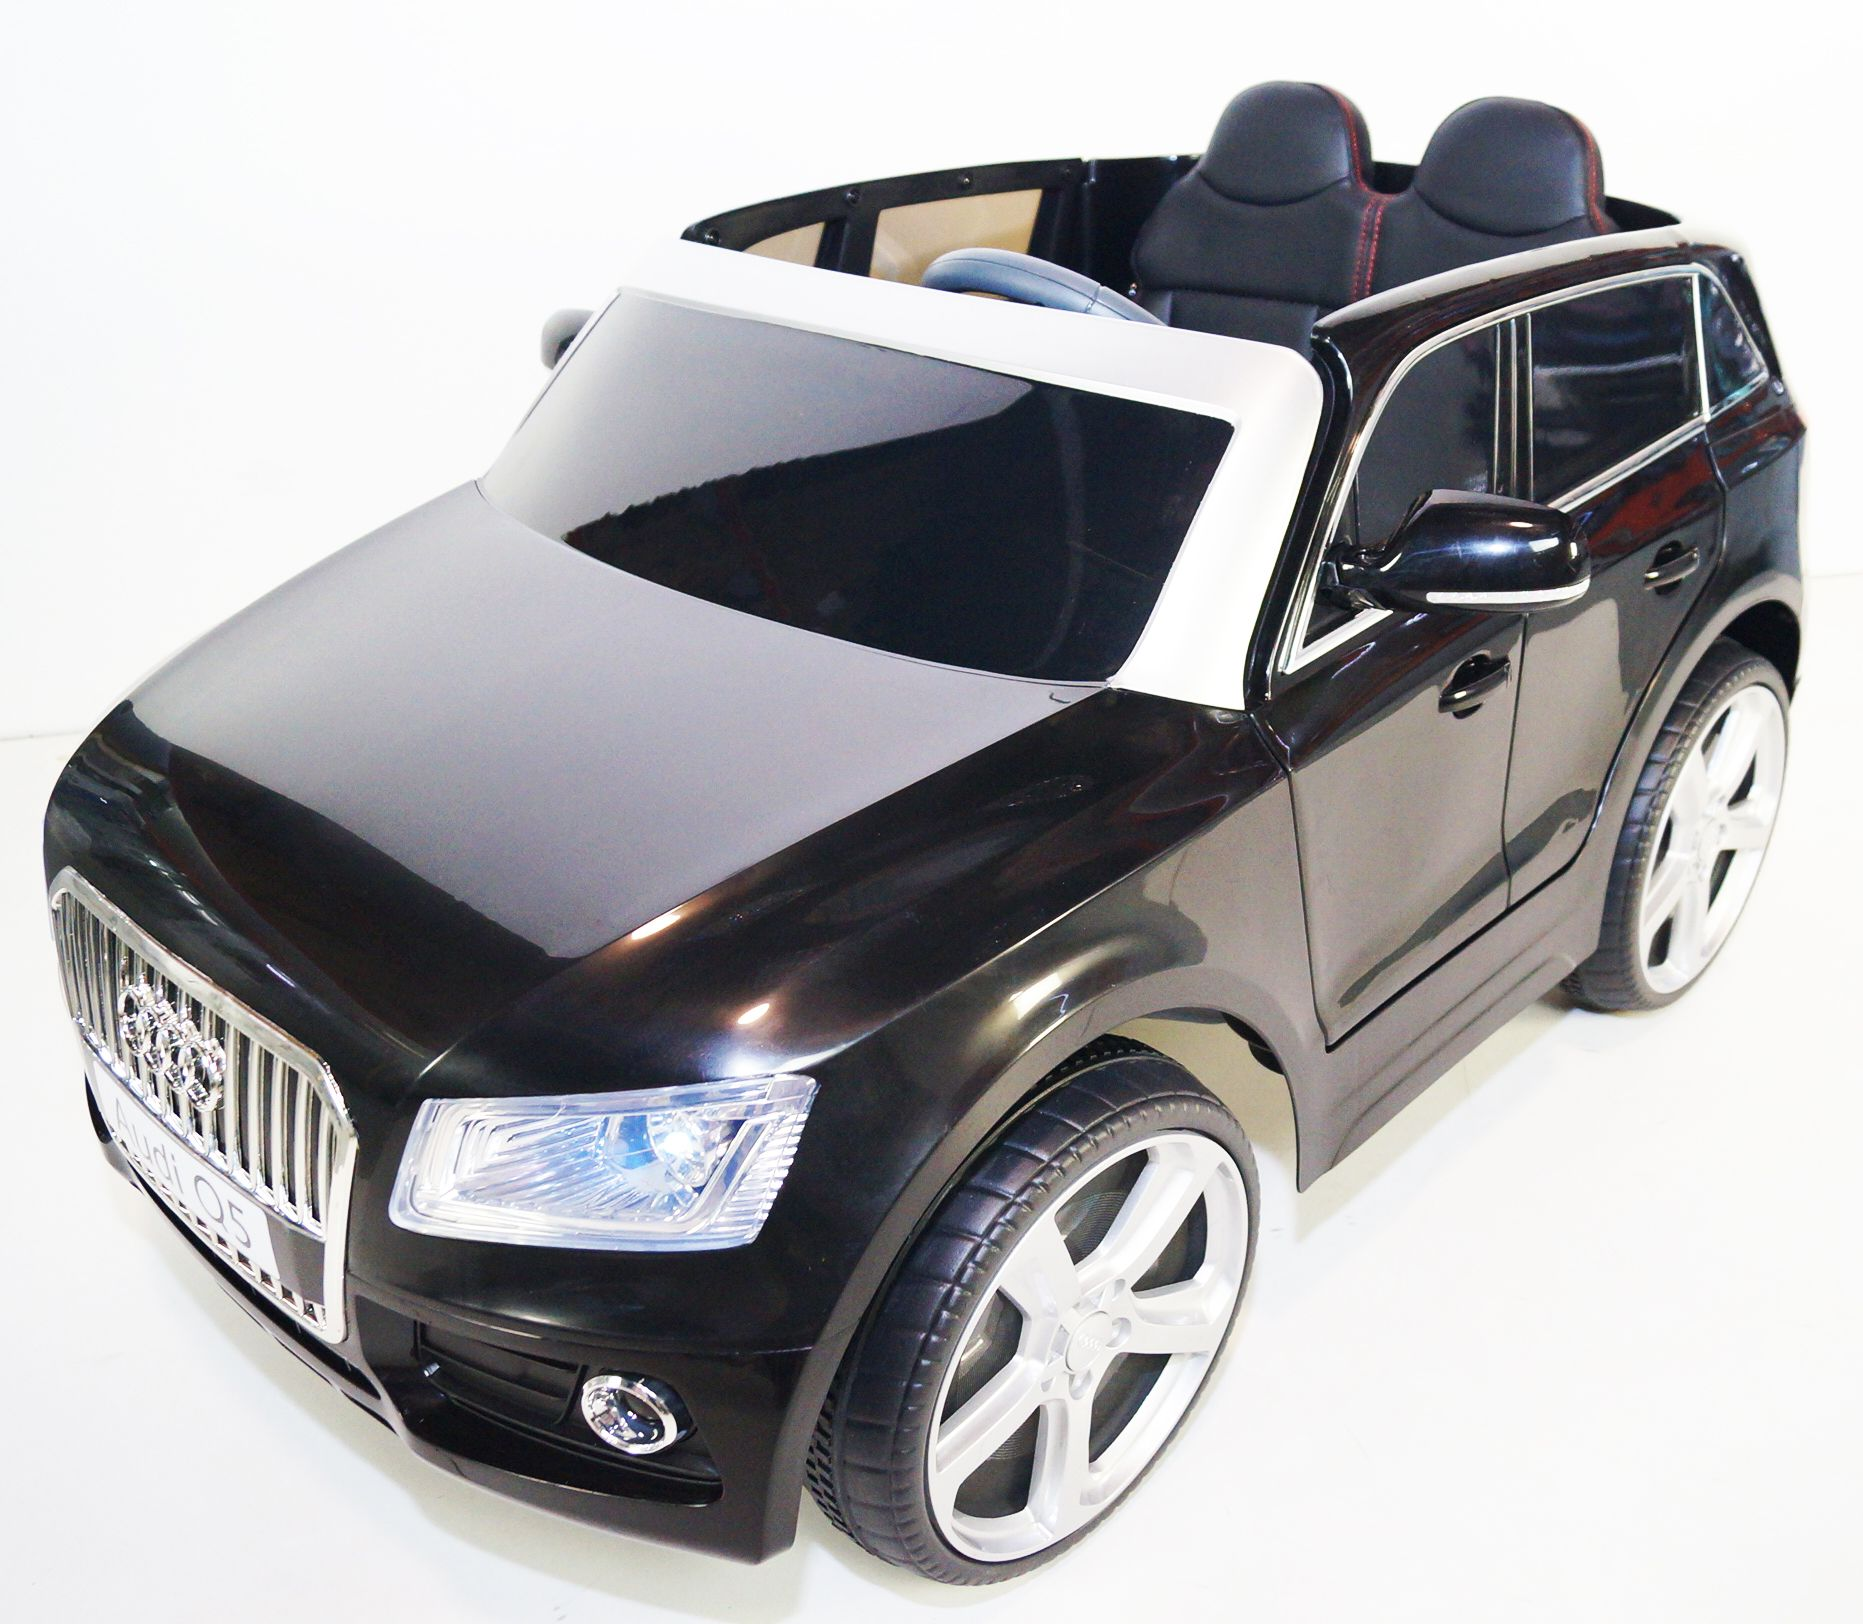 e5c5ac425da52 Luxury Edition 12v Audi Q5 Series Ride on SUV Car for Kids